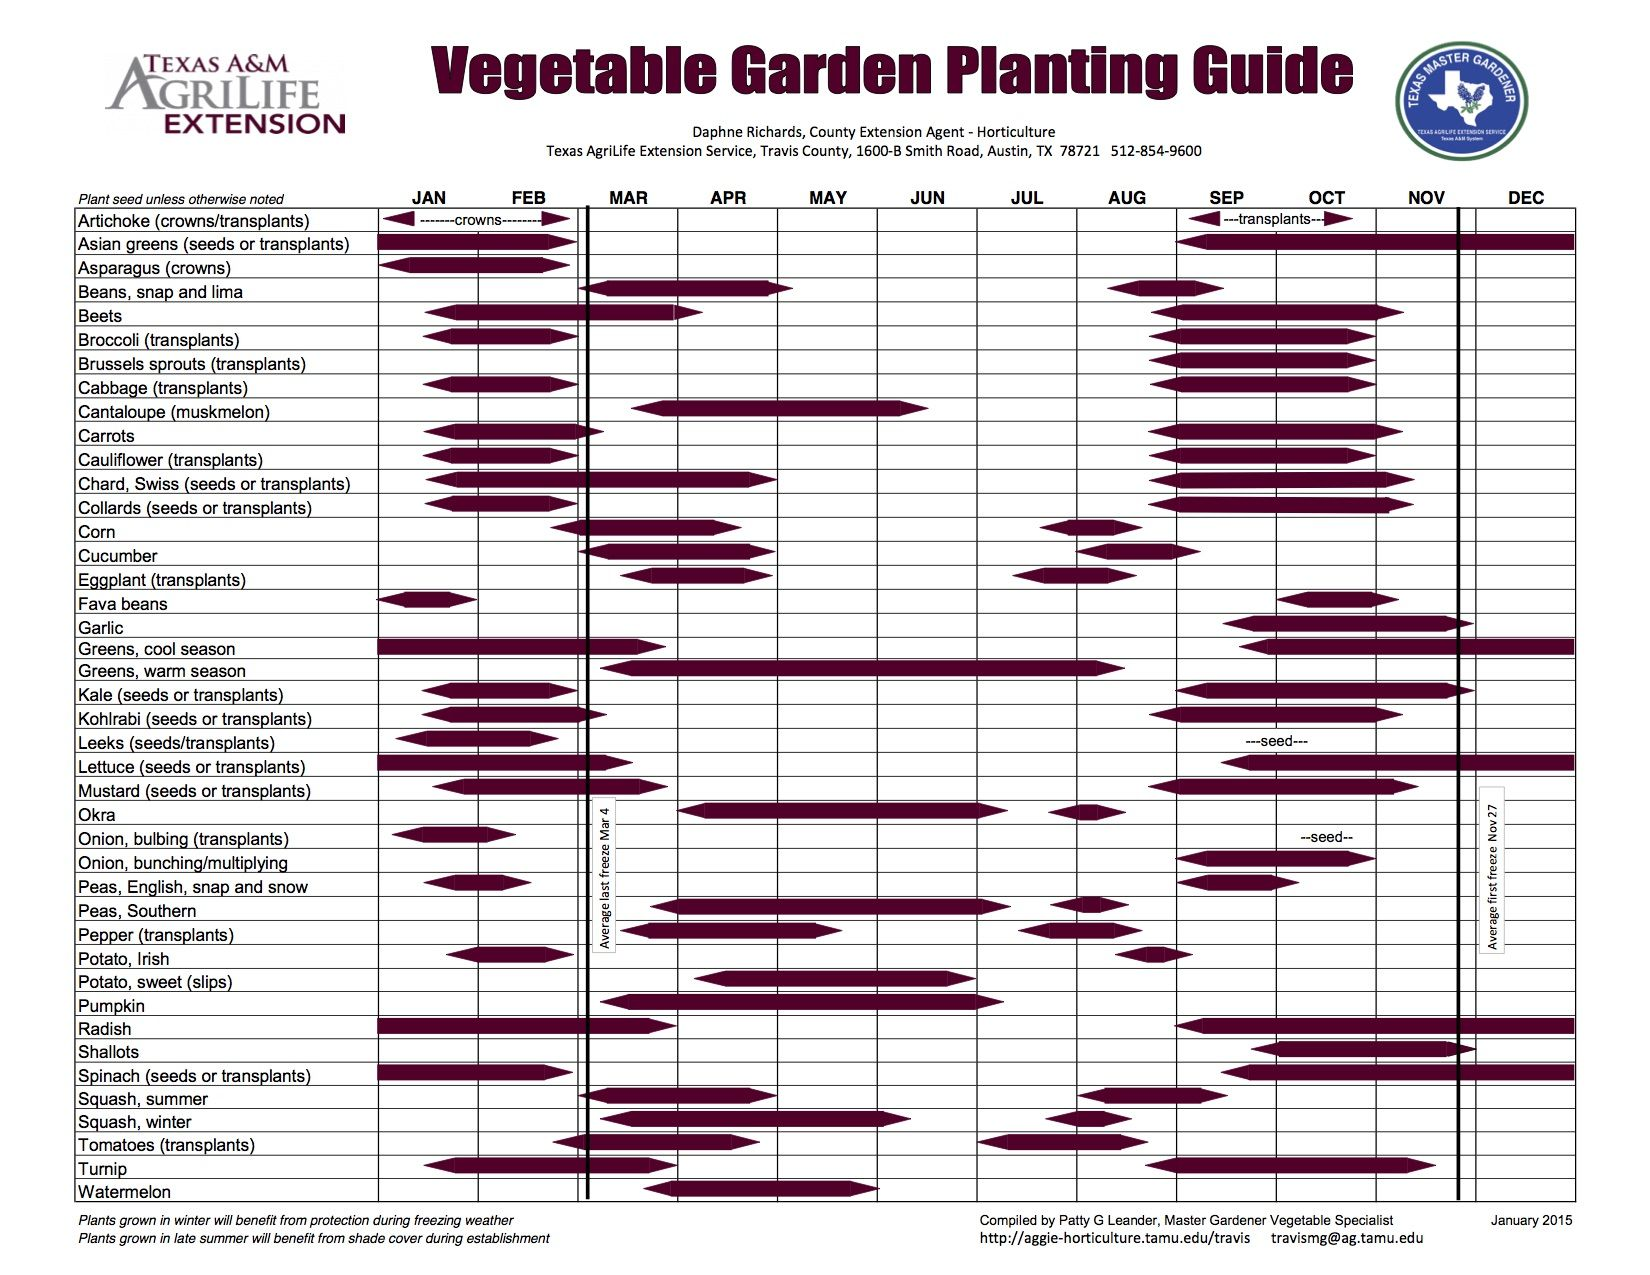 Pin By L W On Garden Vegetable Planting Calendar Planting Calendar Planting Vegetables